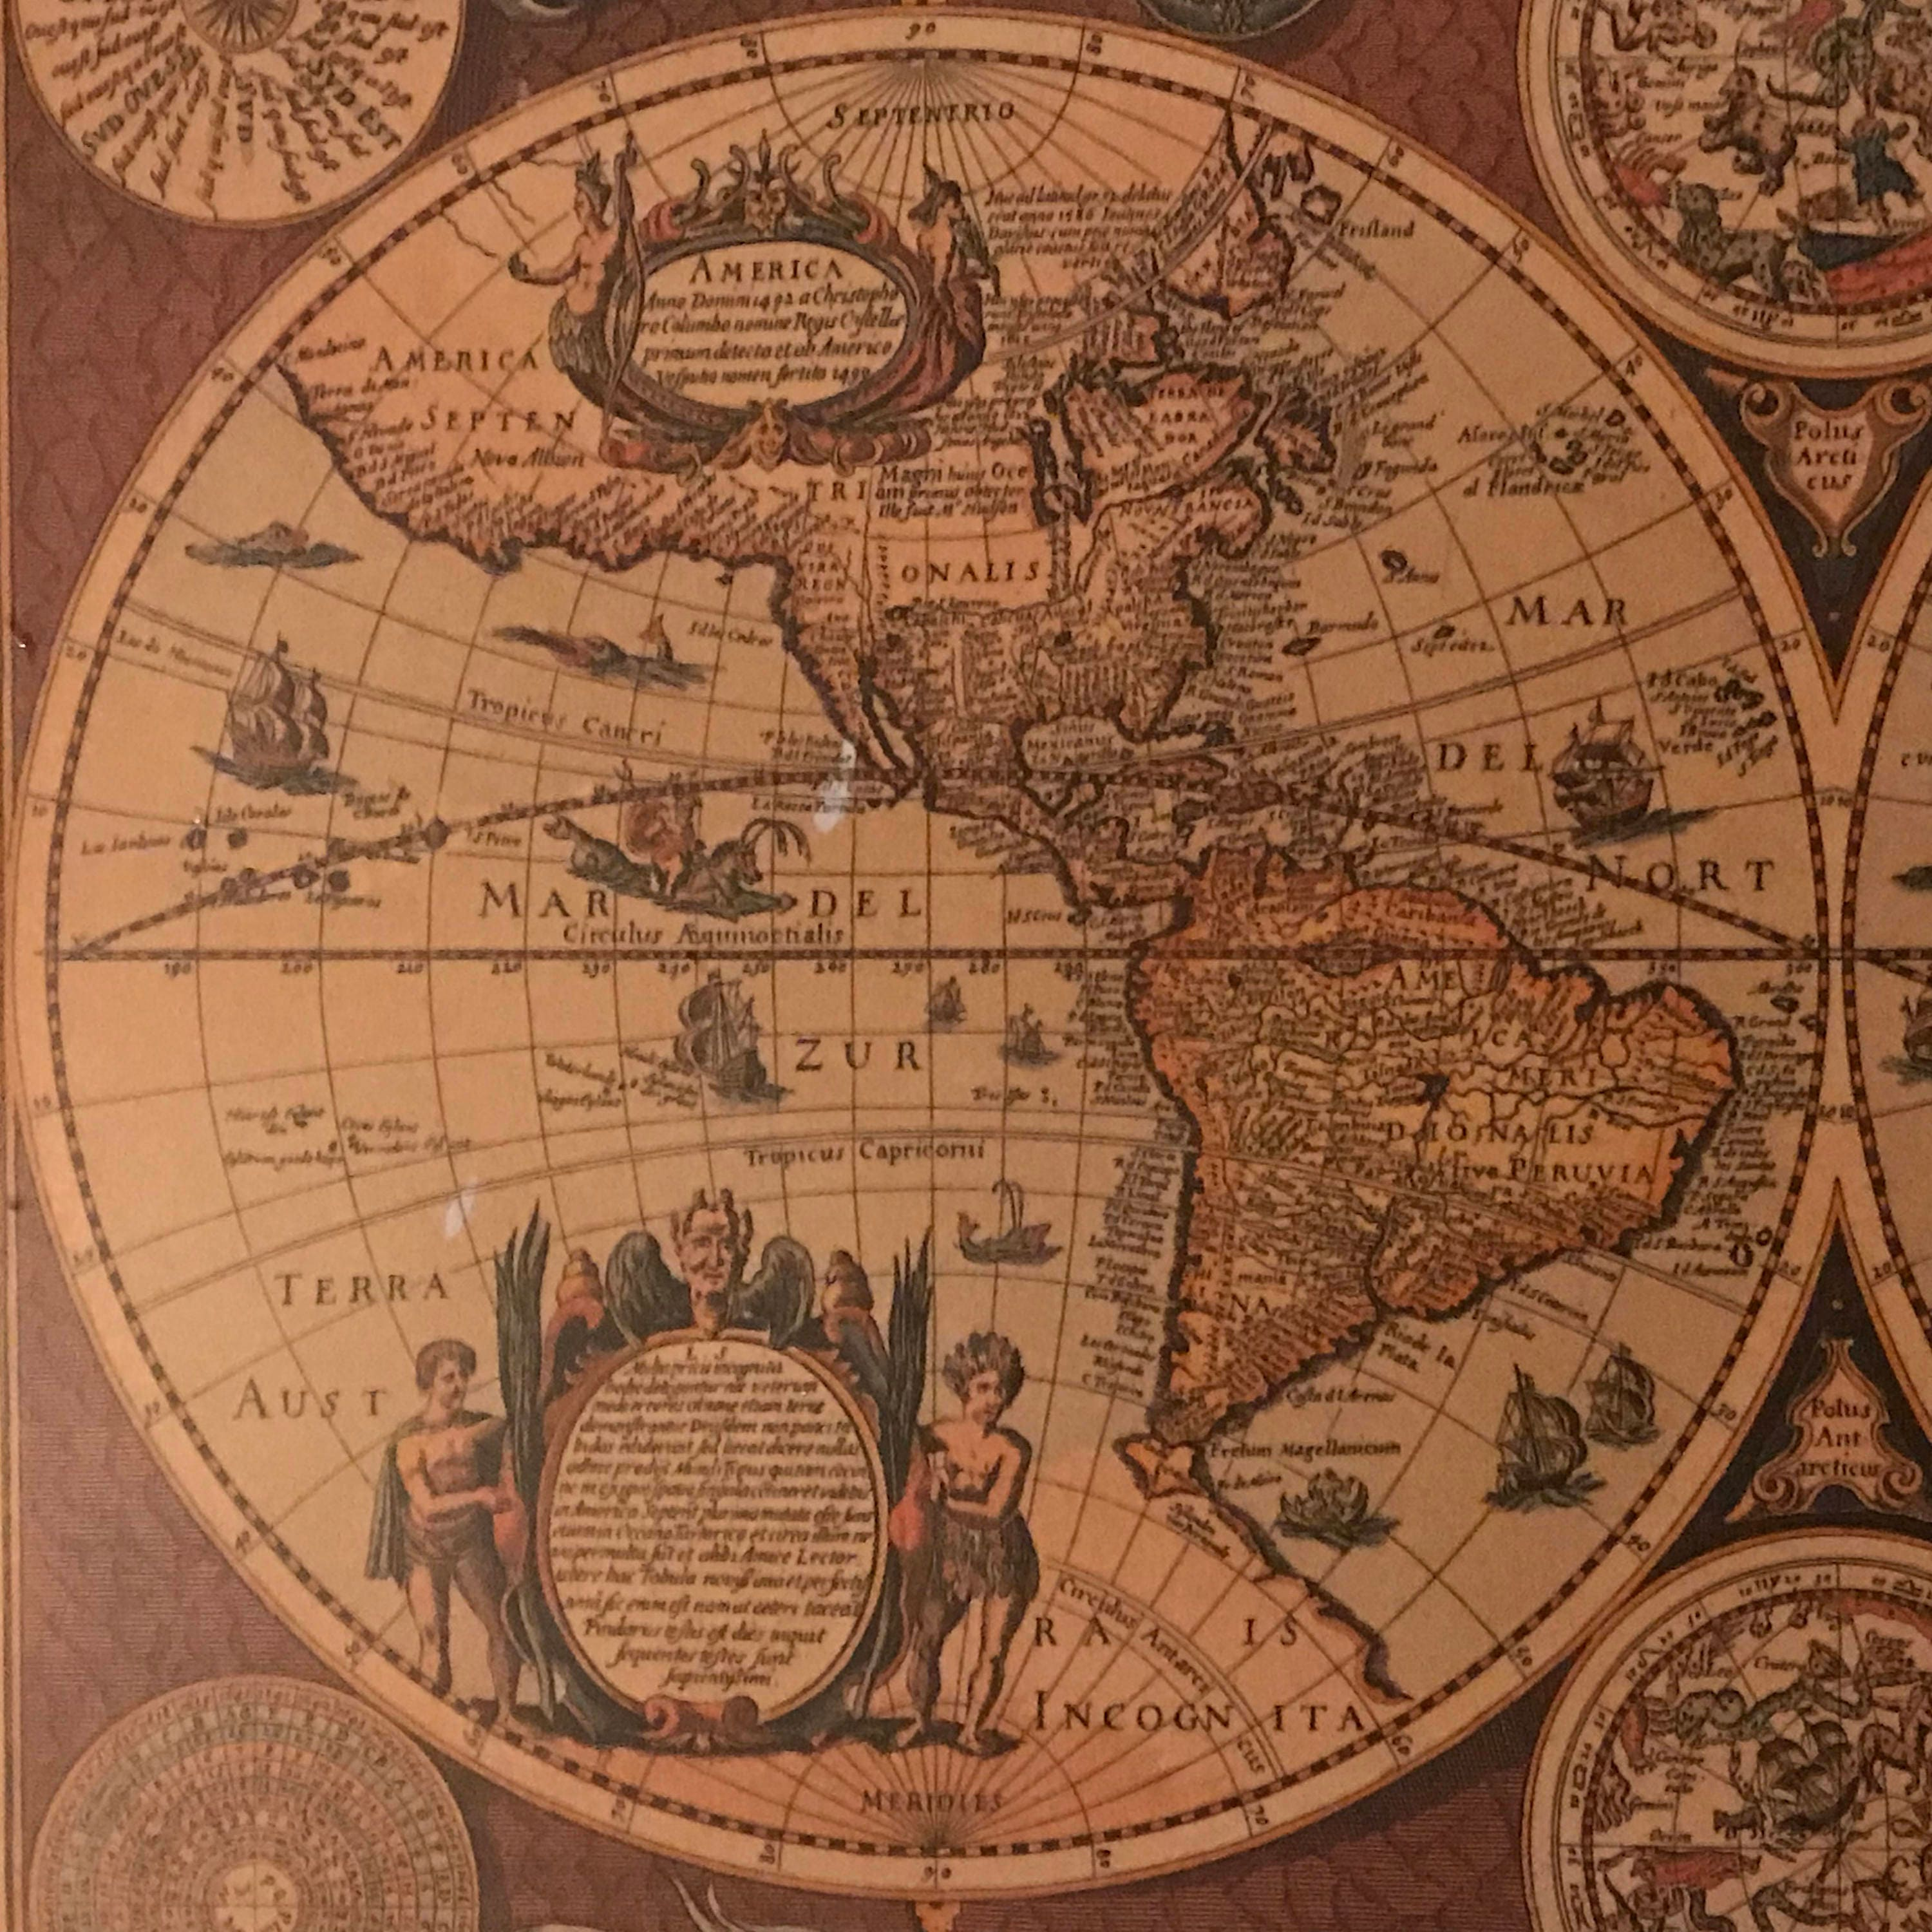 Old world map mirror wall hanging 35 wood frames sylvestri globe old world map mirror wall hanging 35 wood frames sylvestri globe decor nova totius terrarum geographica vintage ancient world map gumiabroncs Image collections